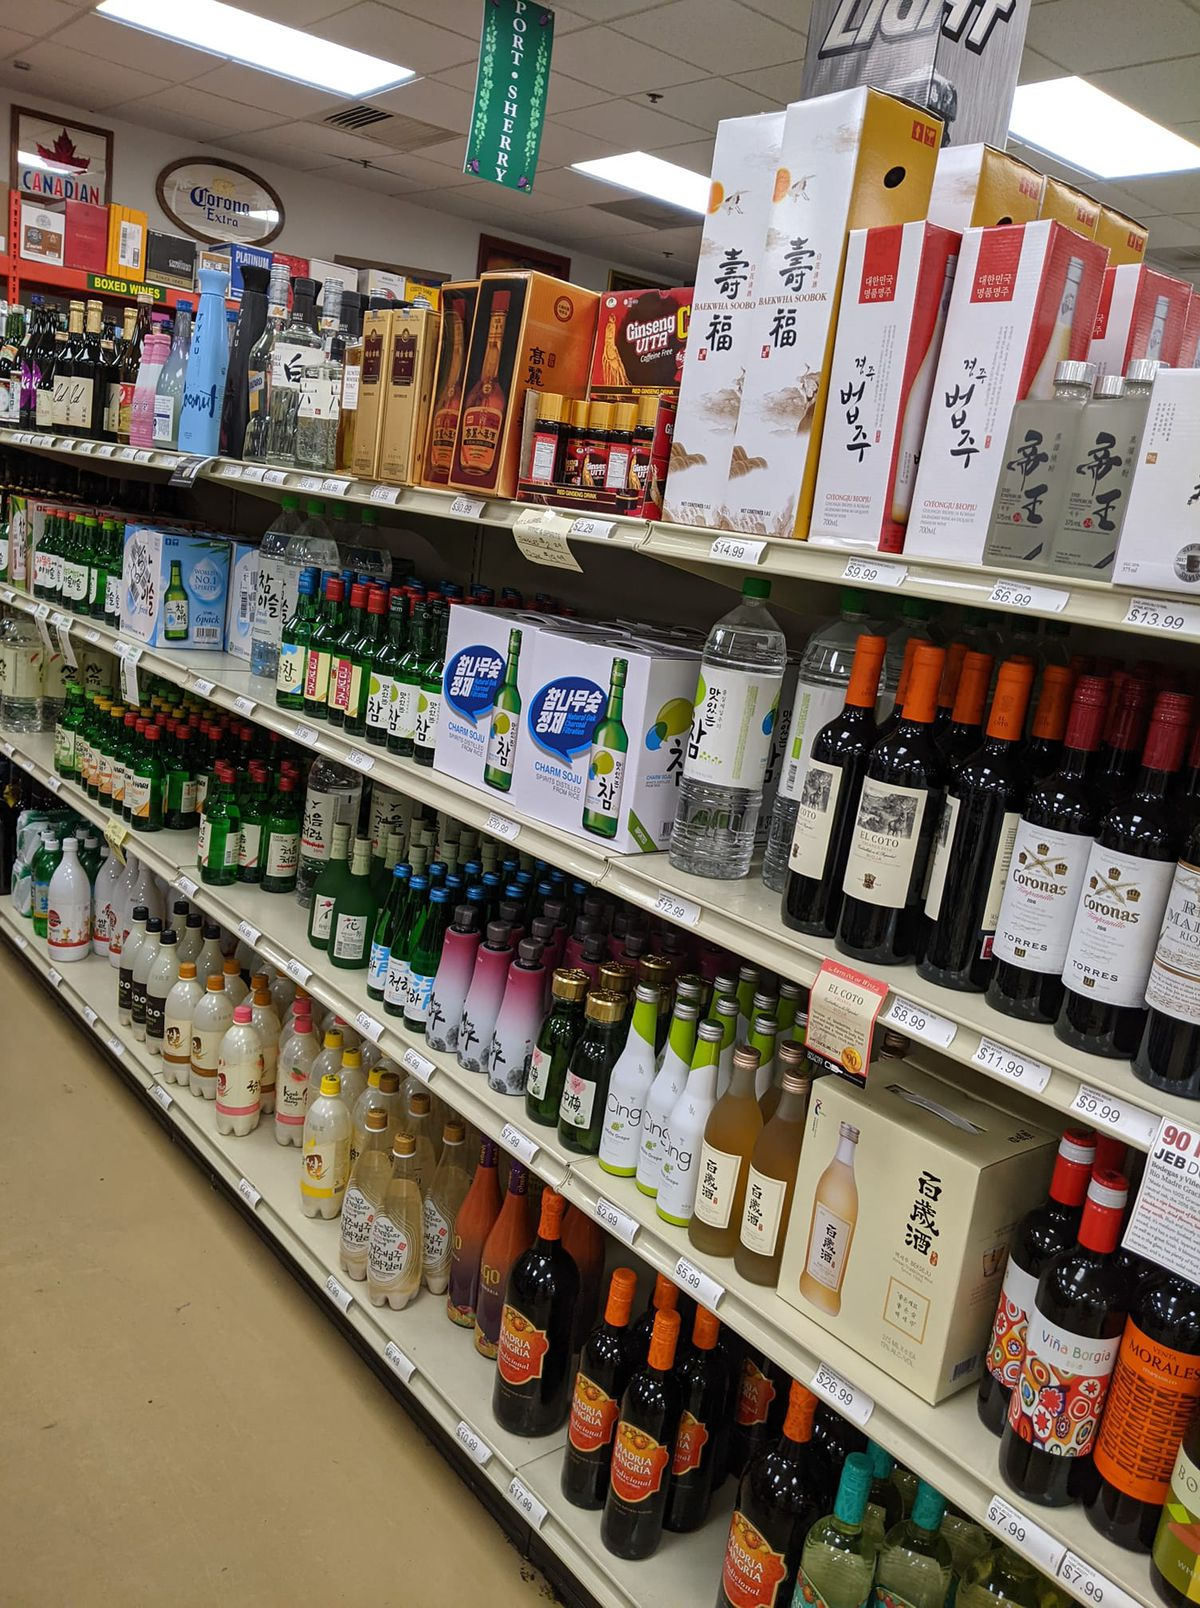 The Korean alcohol selection at Mt Laurel Wine & Spirits on a shelf with four rows